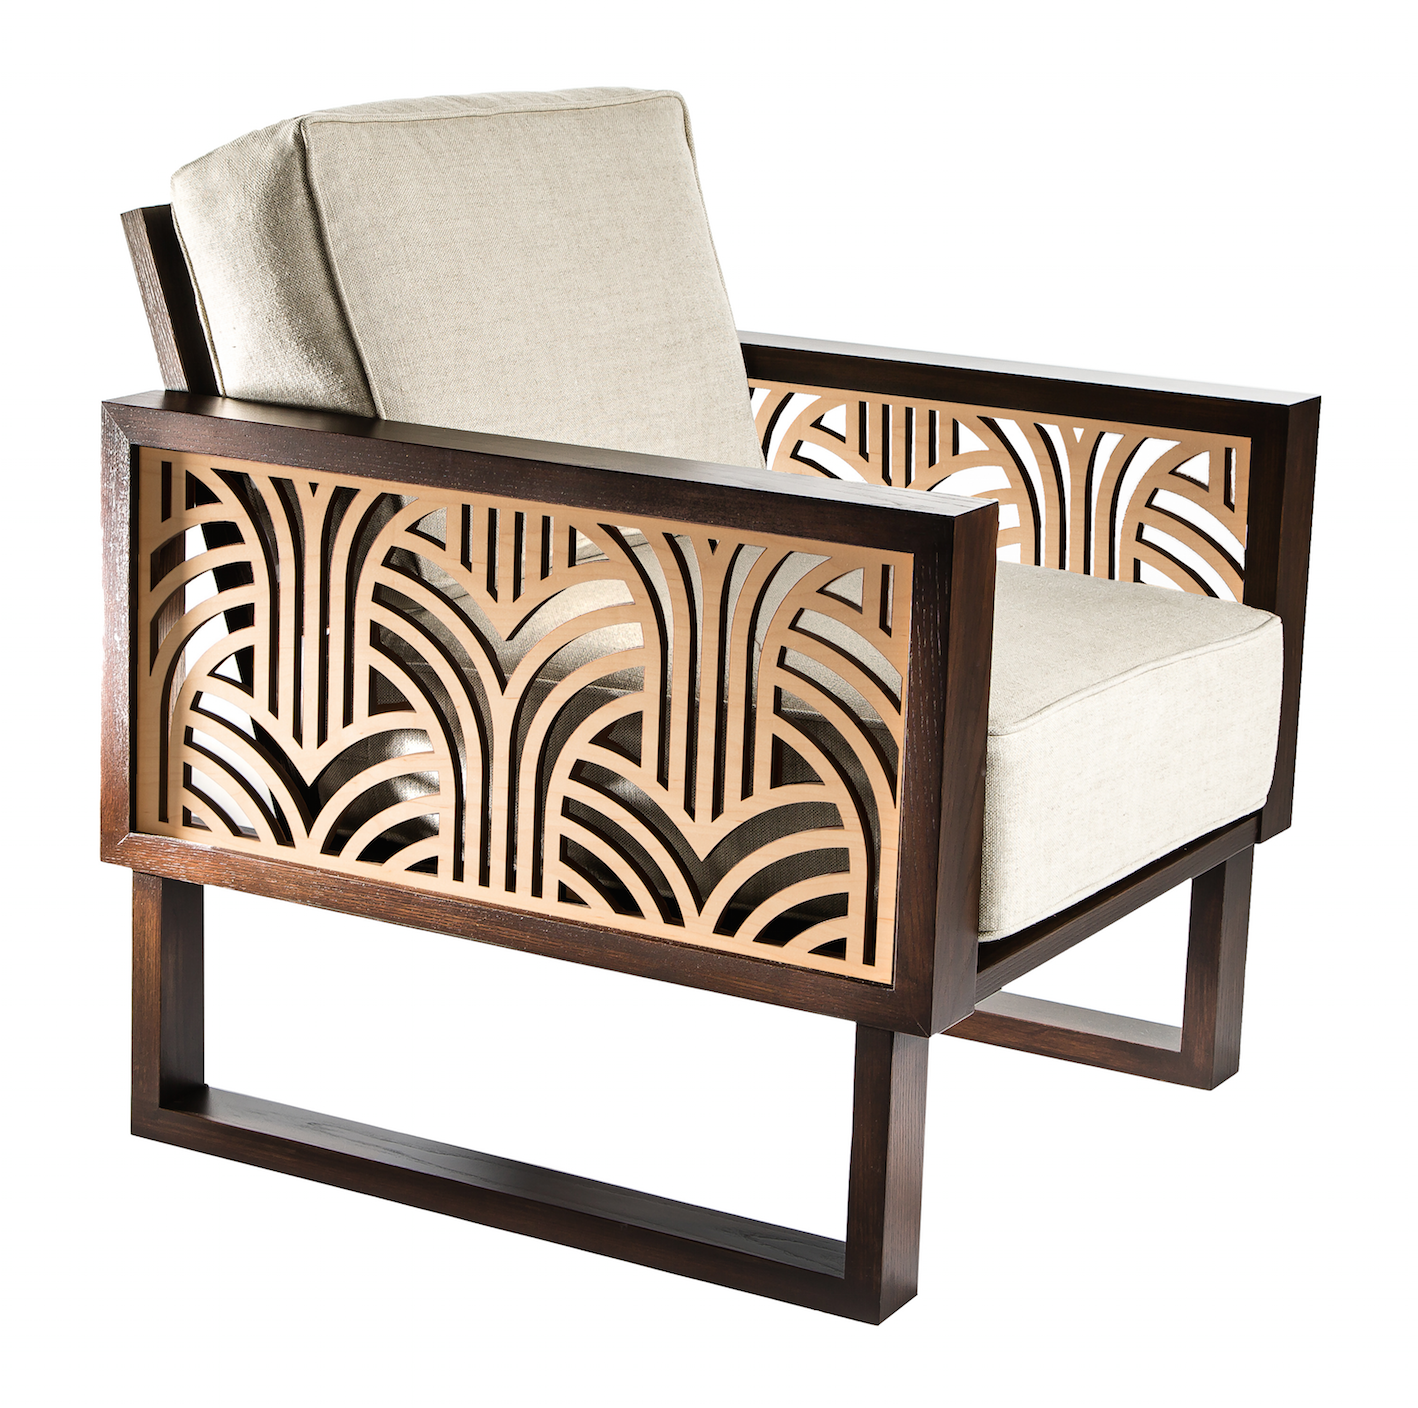 13 Art Deco Chairs Furniture